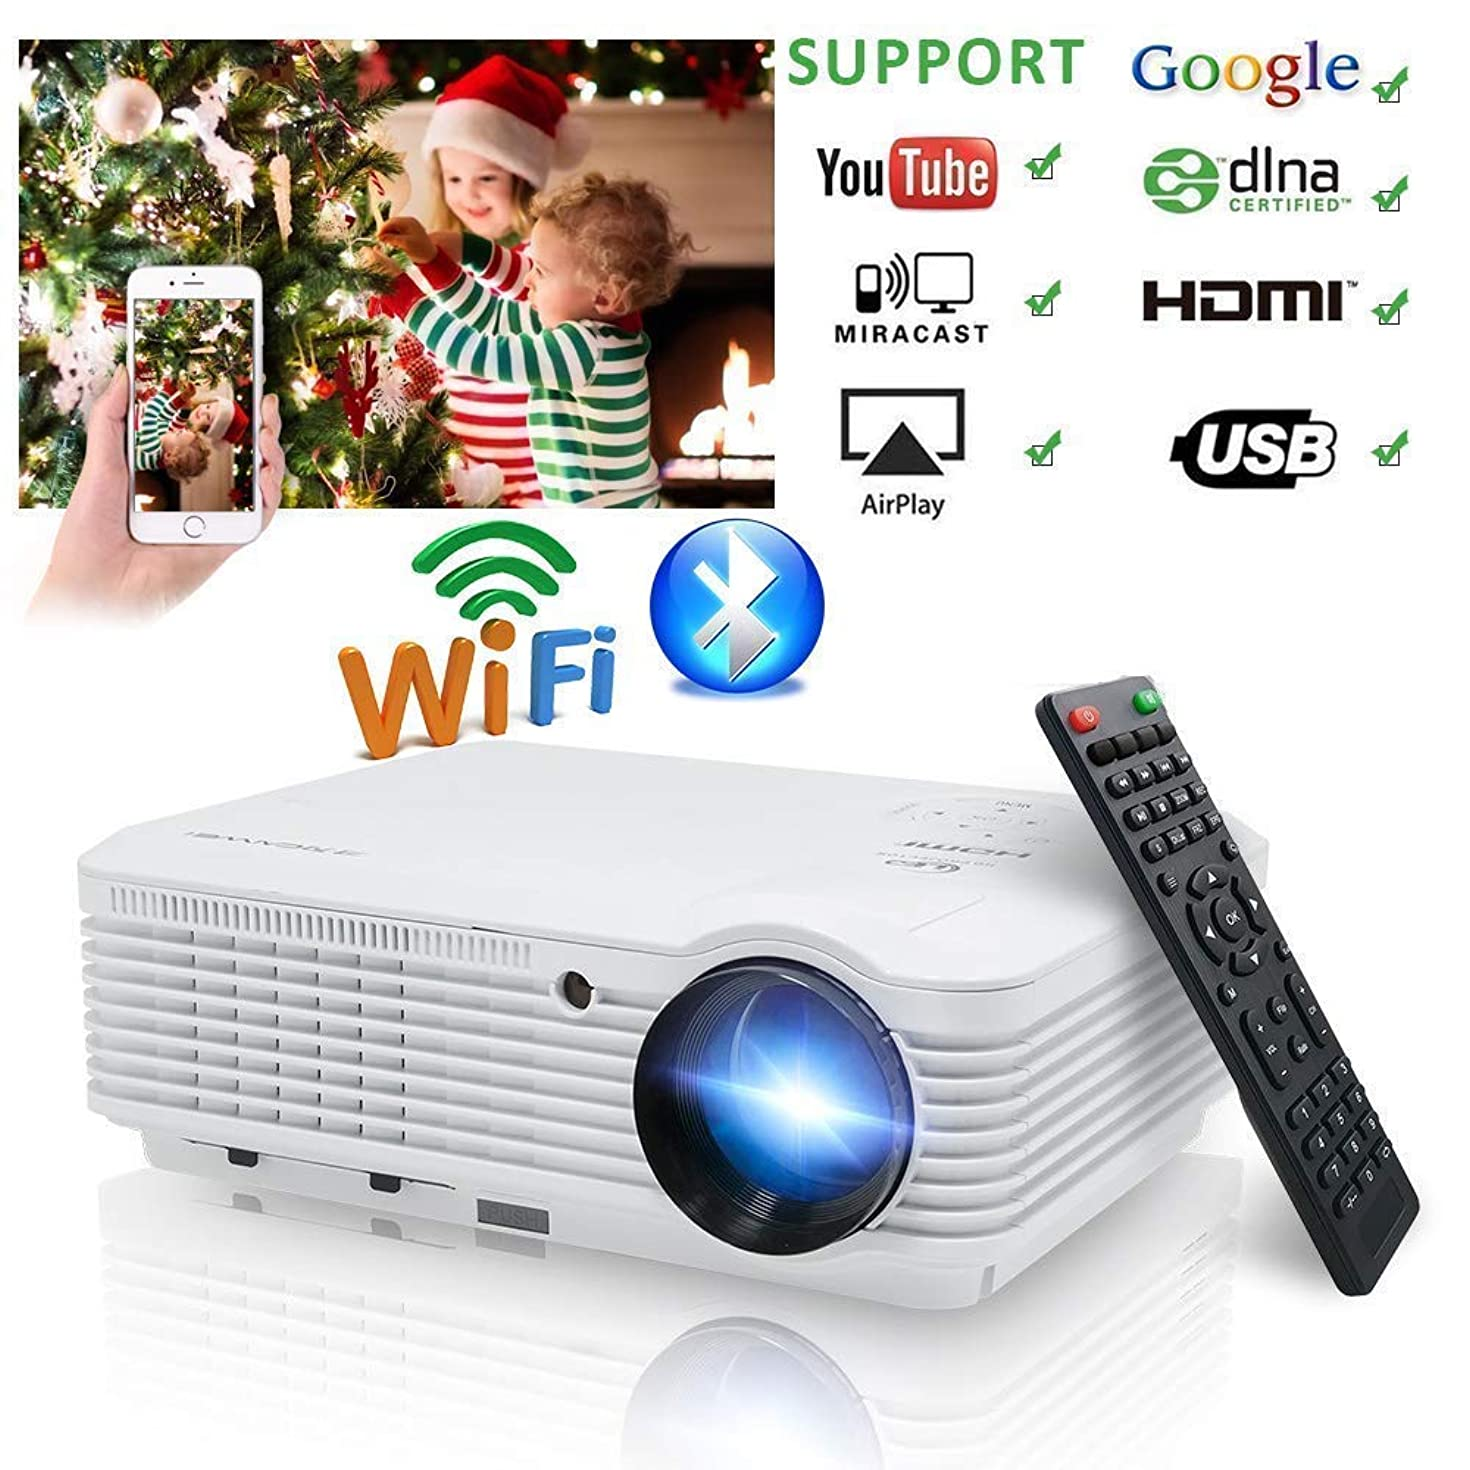 Video Projector 1080p 3900 Lumen, Wireless Proyector WiFi Bluetooth Android 6.0 HD WXGA Multimedia Home Theater LCD Projectors HDMI USB VGA for TV Phones Laptop Tablet DVD Xbox PS4 Game Outdoor Movies